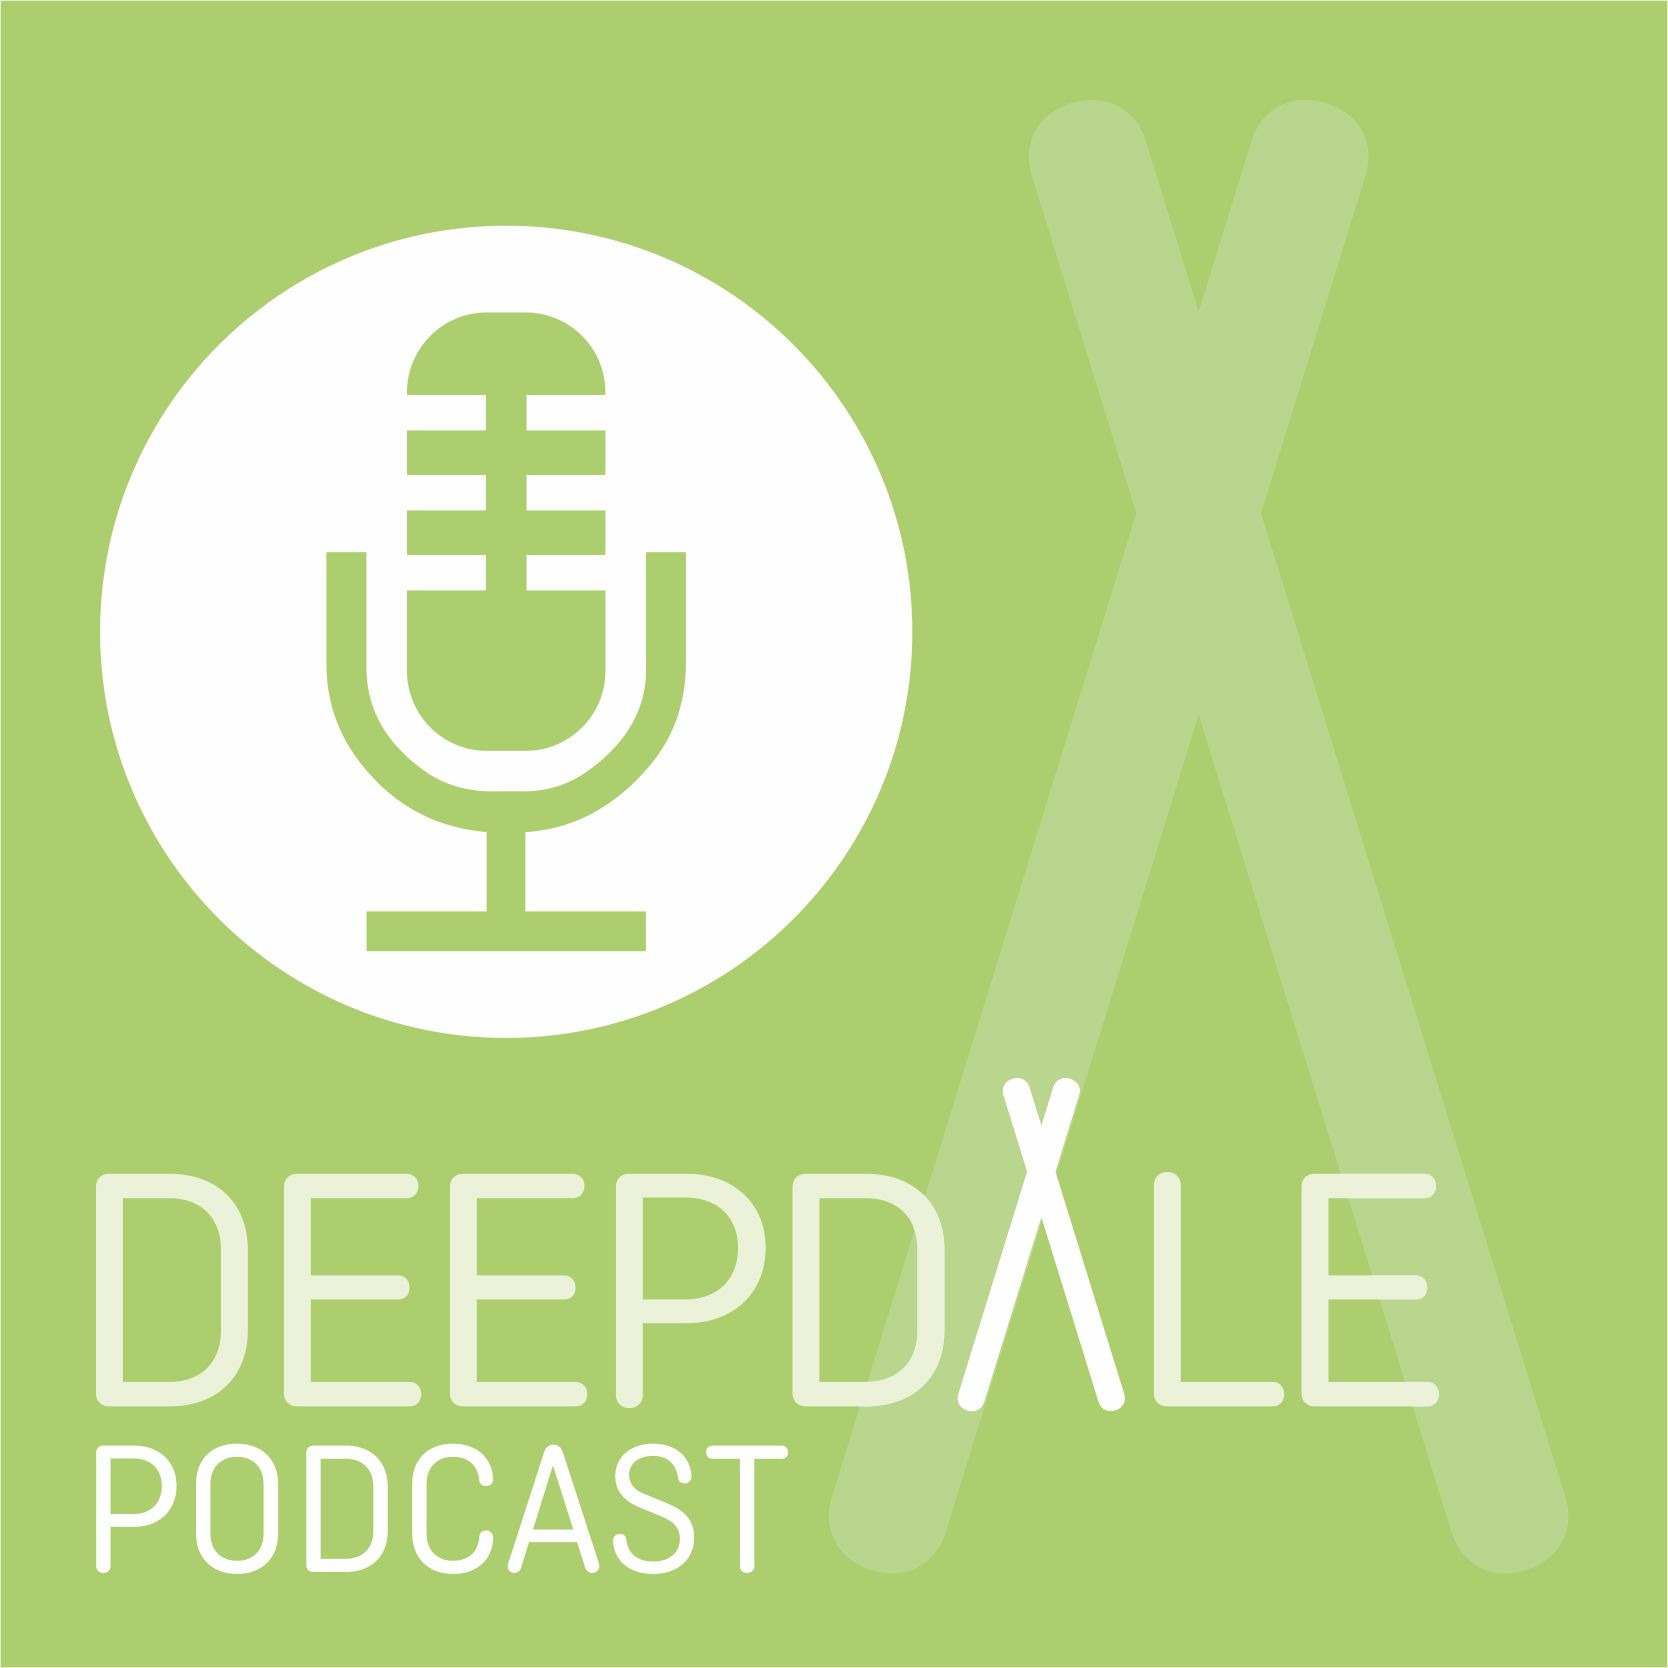 Deepdale Podcast - August 2019